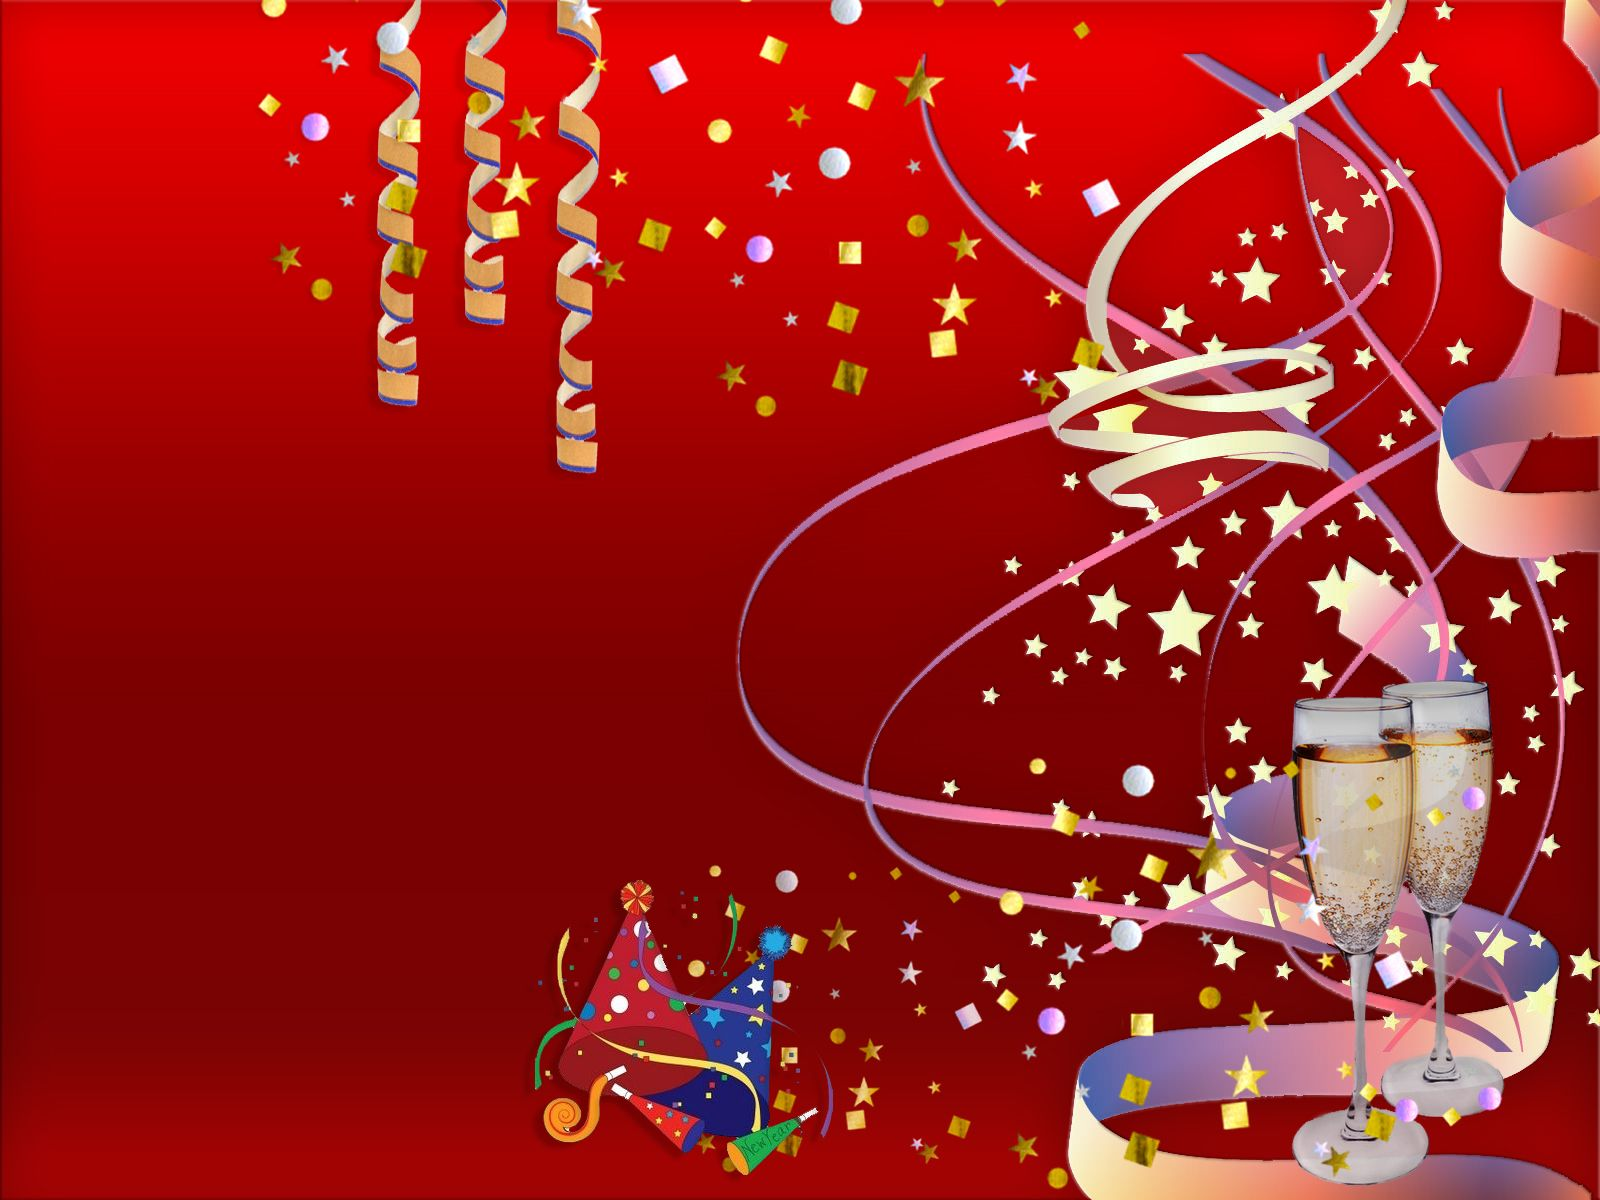 Happy new year 2015 hd wallpaper and wishes new year 2015 happy new year 2015 hd wallpaper and wishes new year 2015 pinterest hd wallpaper kristyandbryce Choice Image